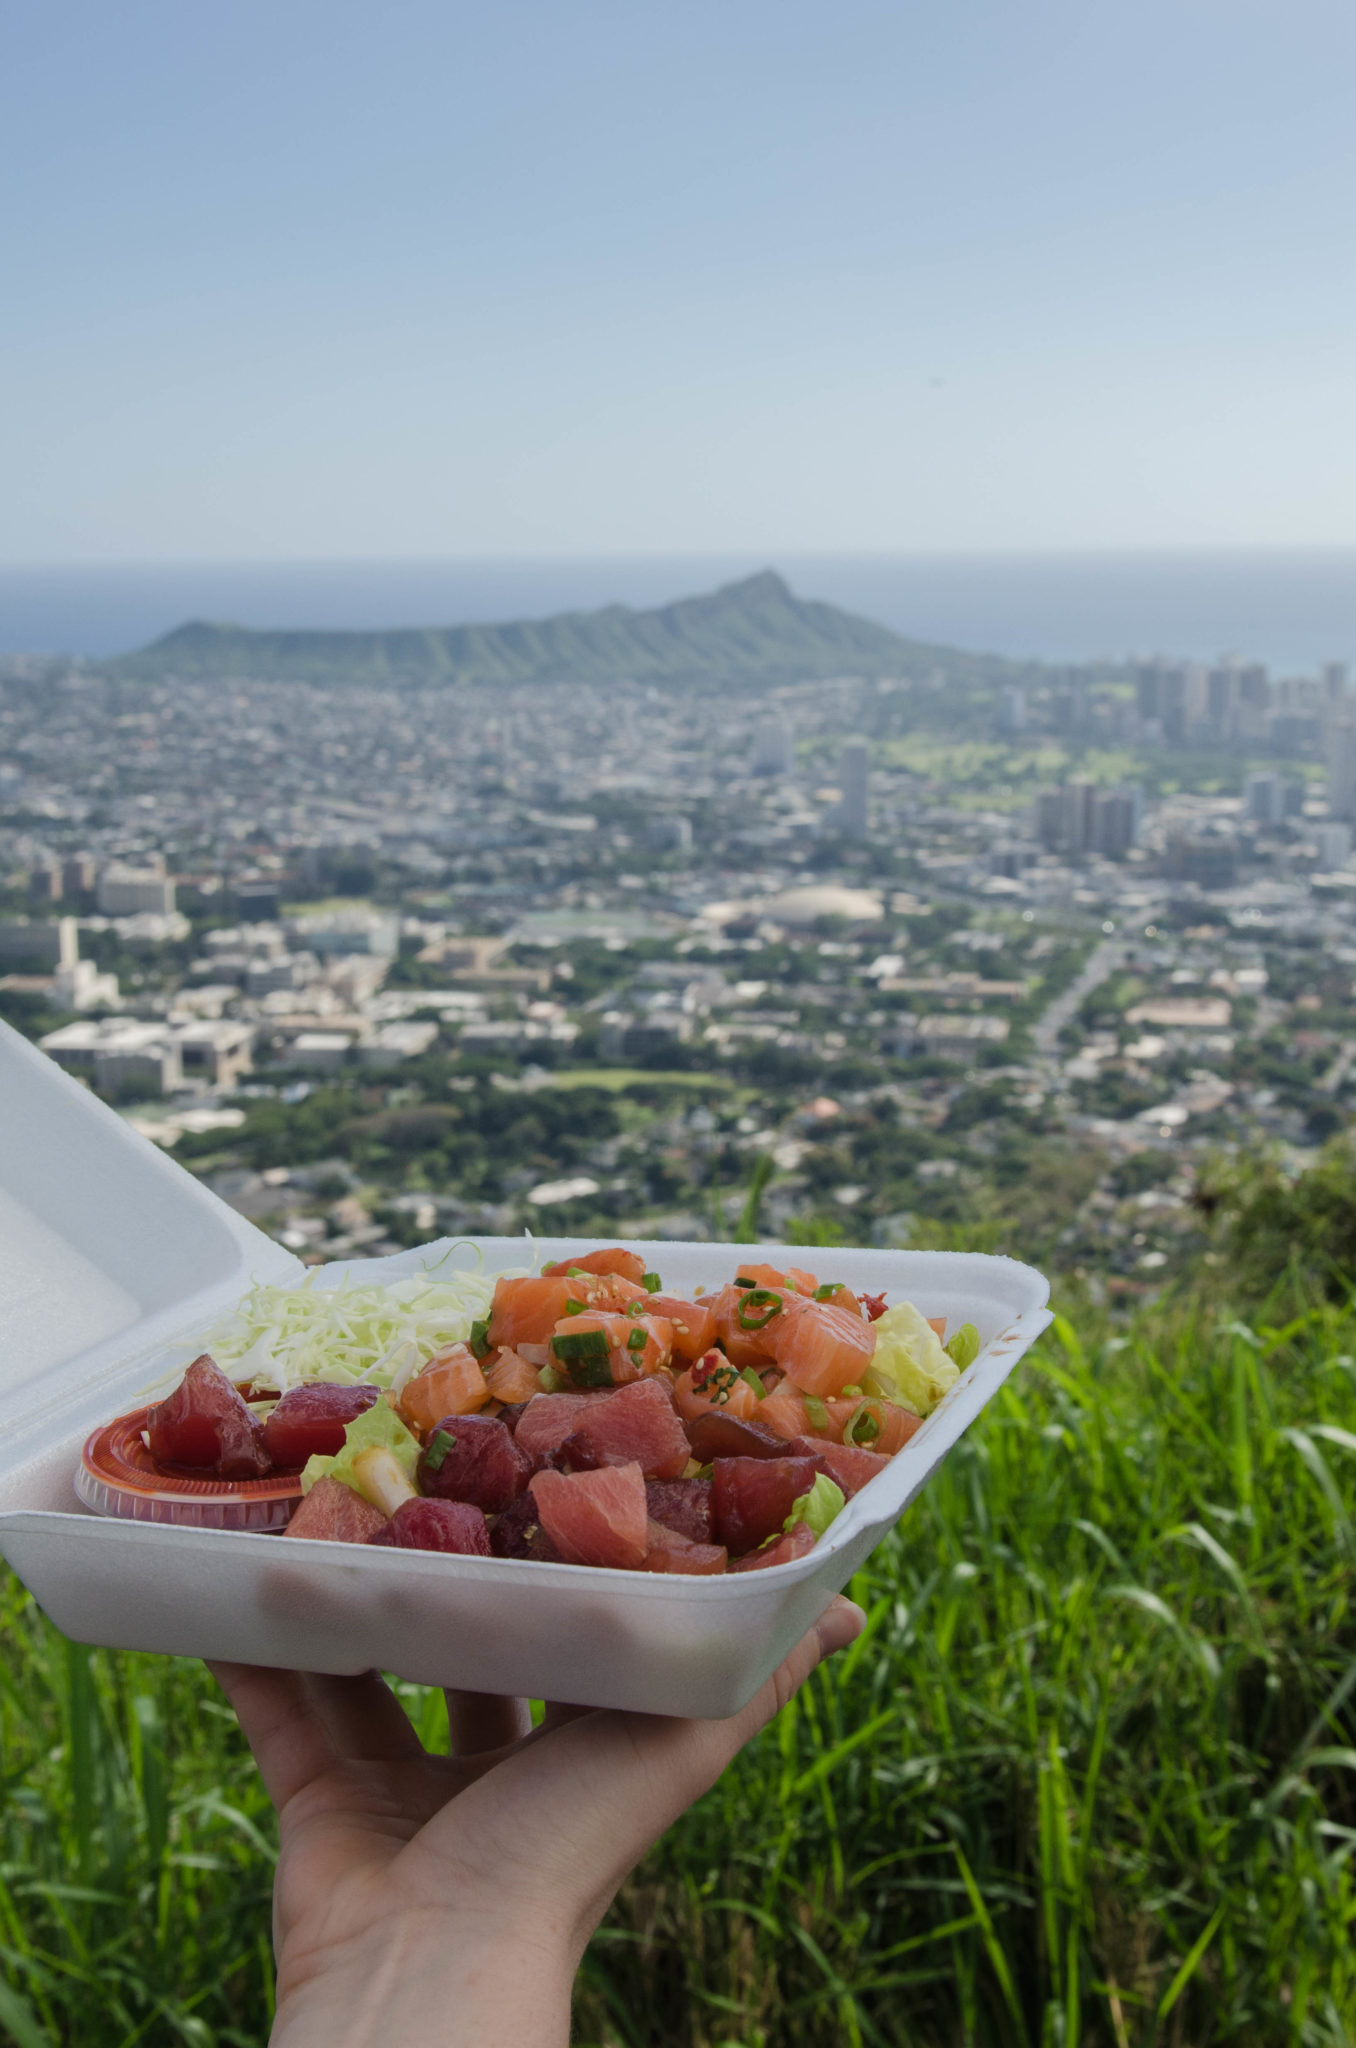 Hawaii Guide: Poke Bowl is one of the main dishes served in Hawaii and belongs to the best of Hawaii.